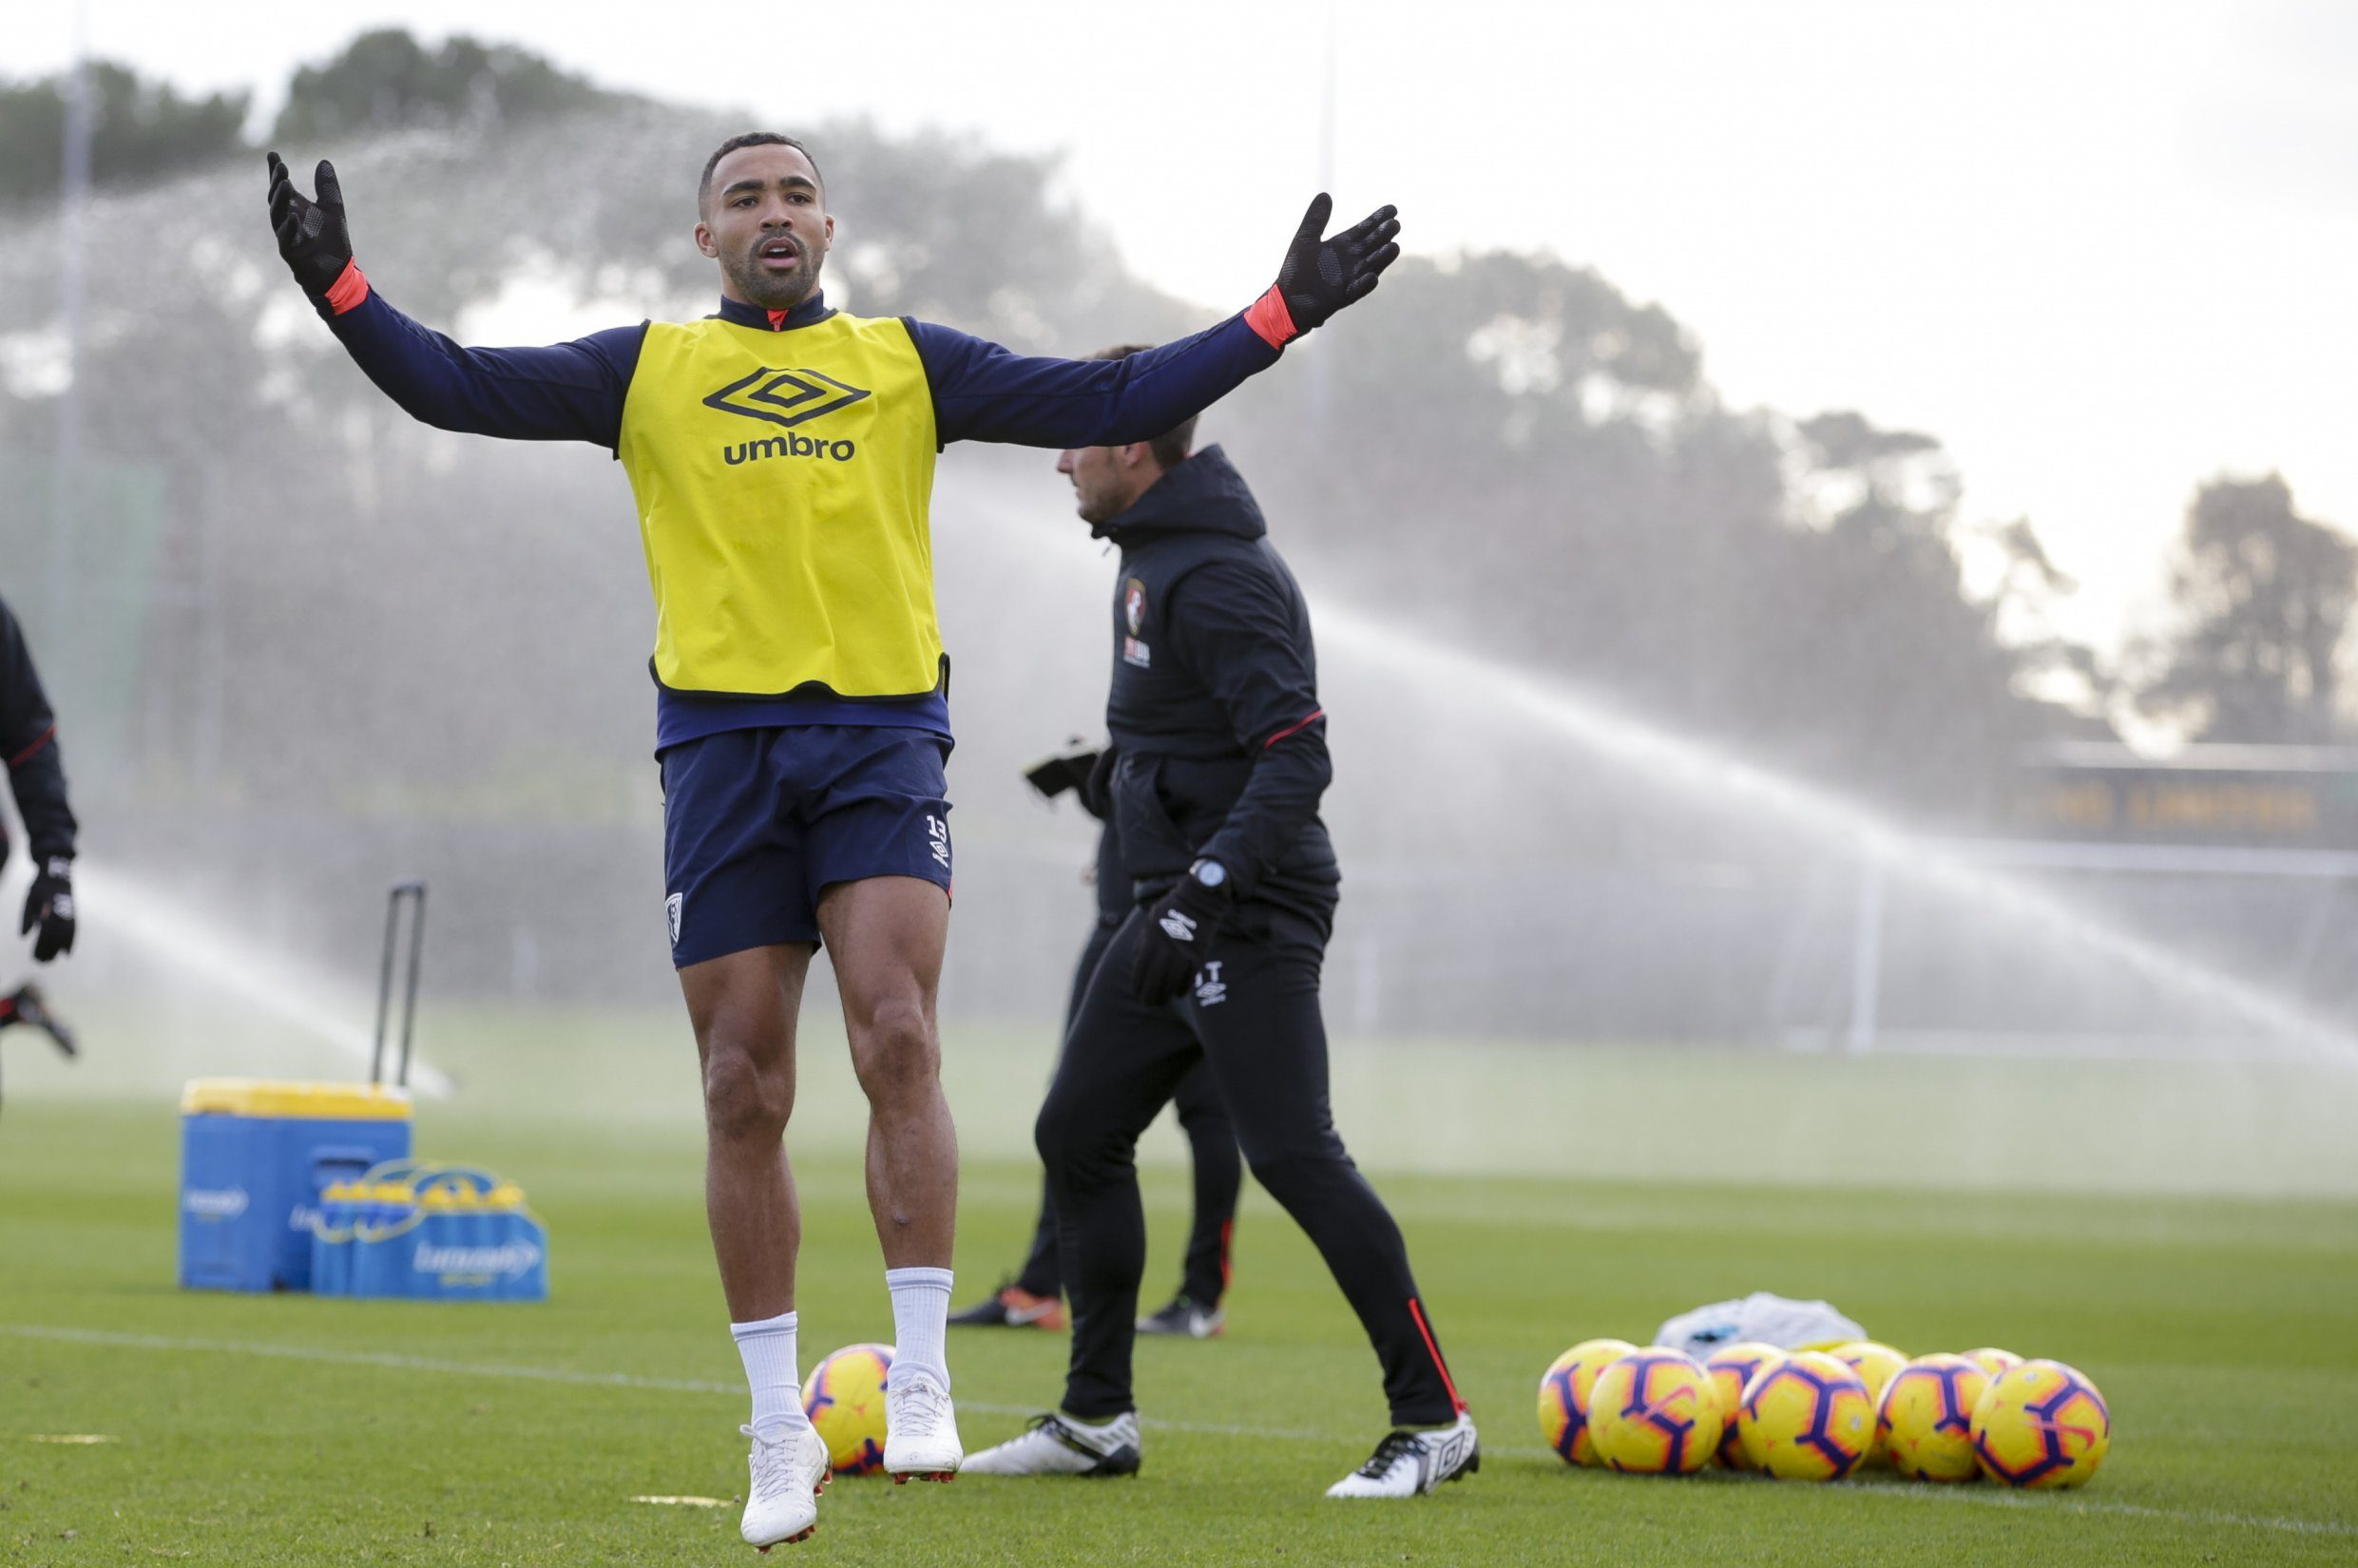 BOURNEMOUTH, ENGLAND - DECEMBER 12: Callum Wilson of Bournemouth during a training session at Vitality Stadium on December 12, 2018 in Bournemouth, England. (Photo by AFC Bournemouth/AFC Bournemouth via Getty Images)